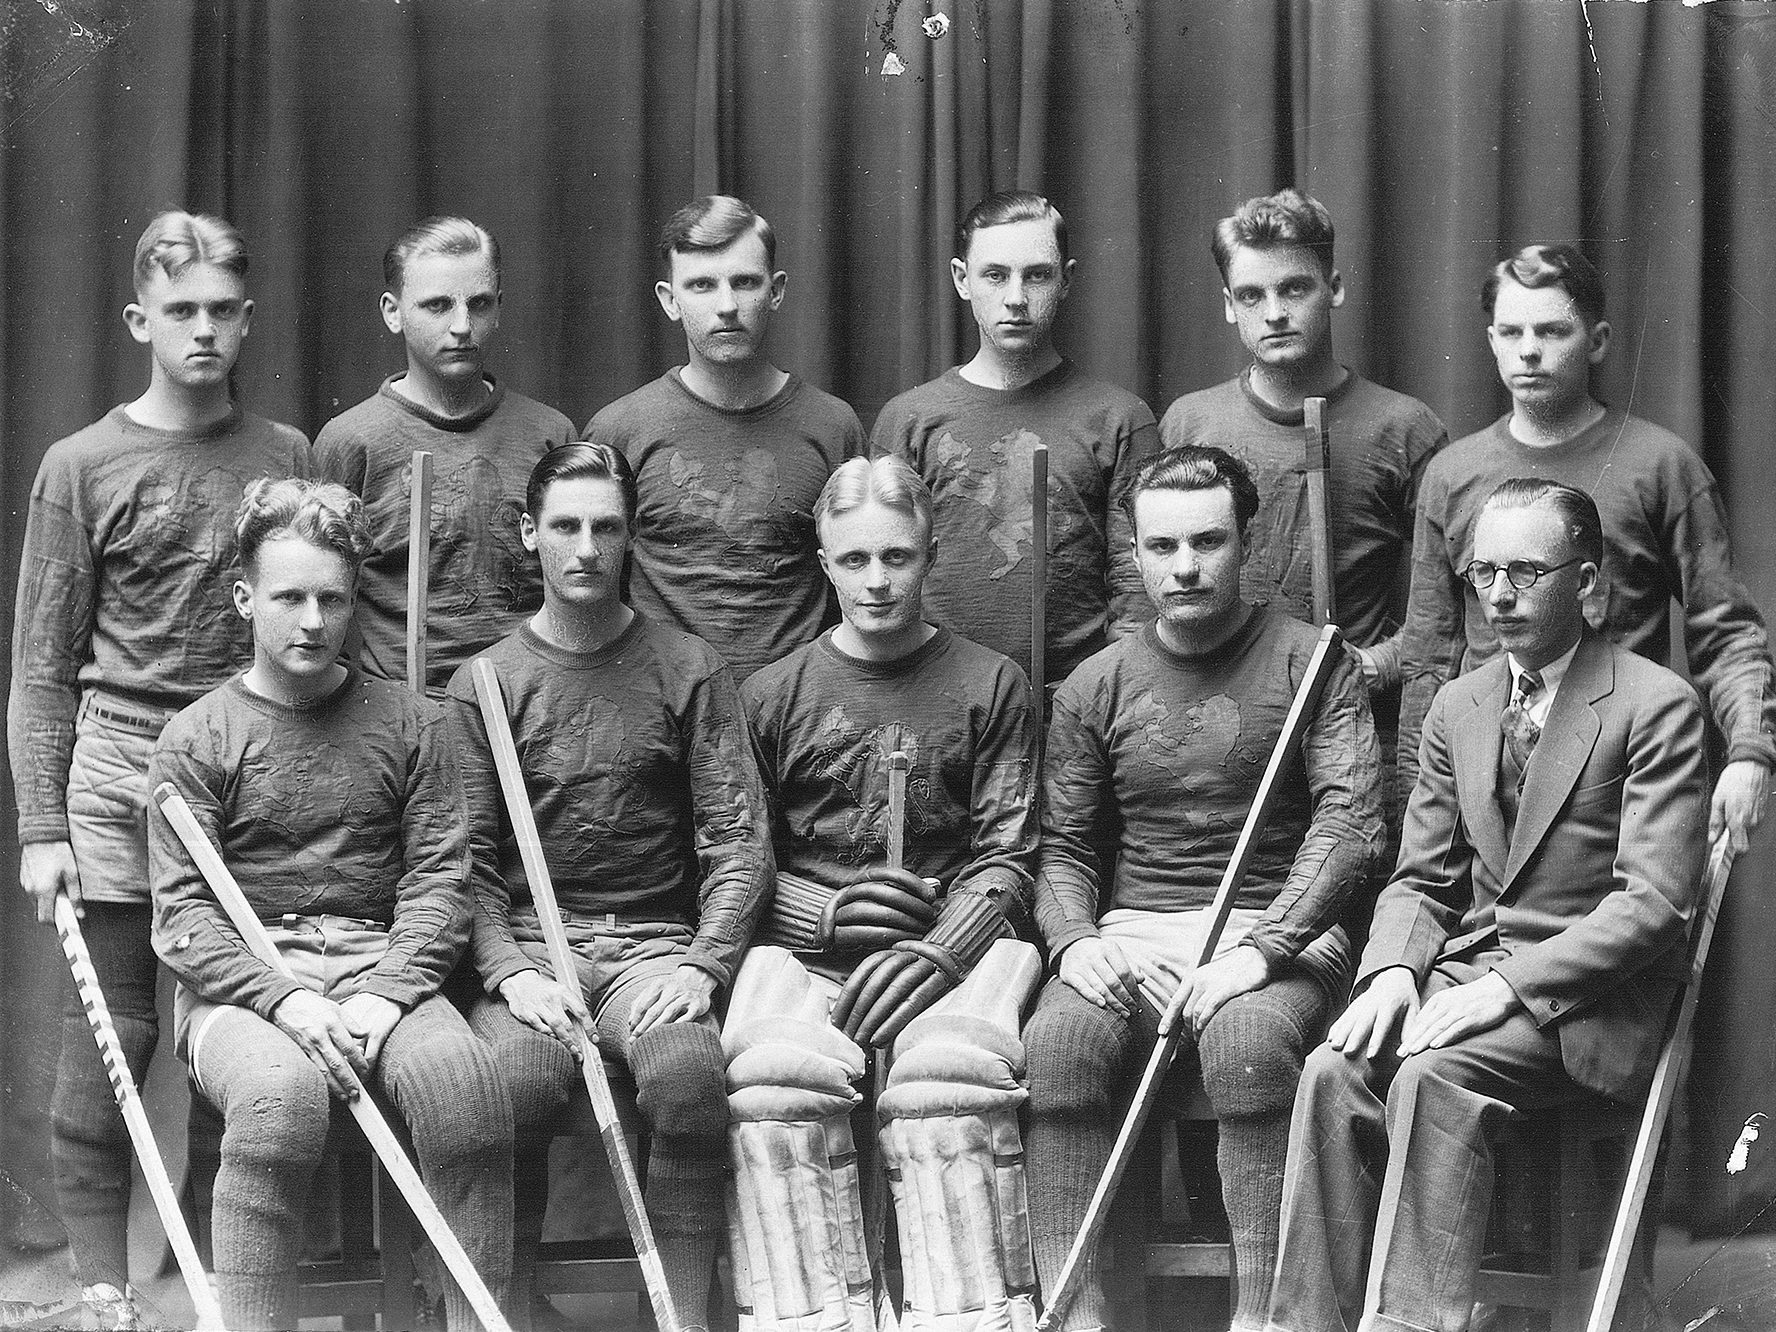 Group photo of original Ole Pucksters in uniform with hockey sticks